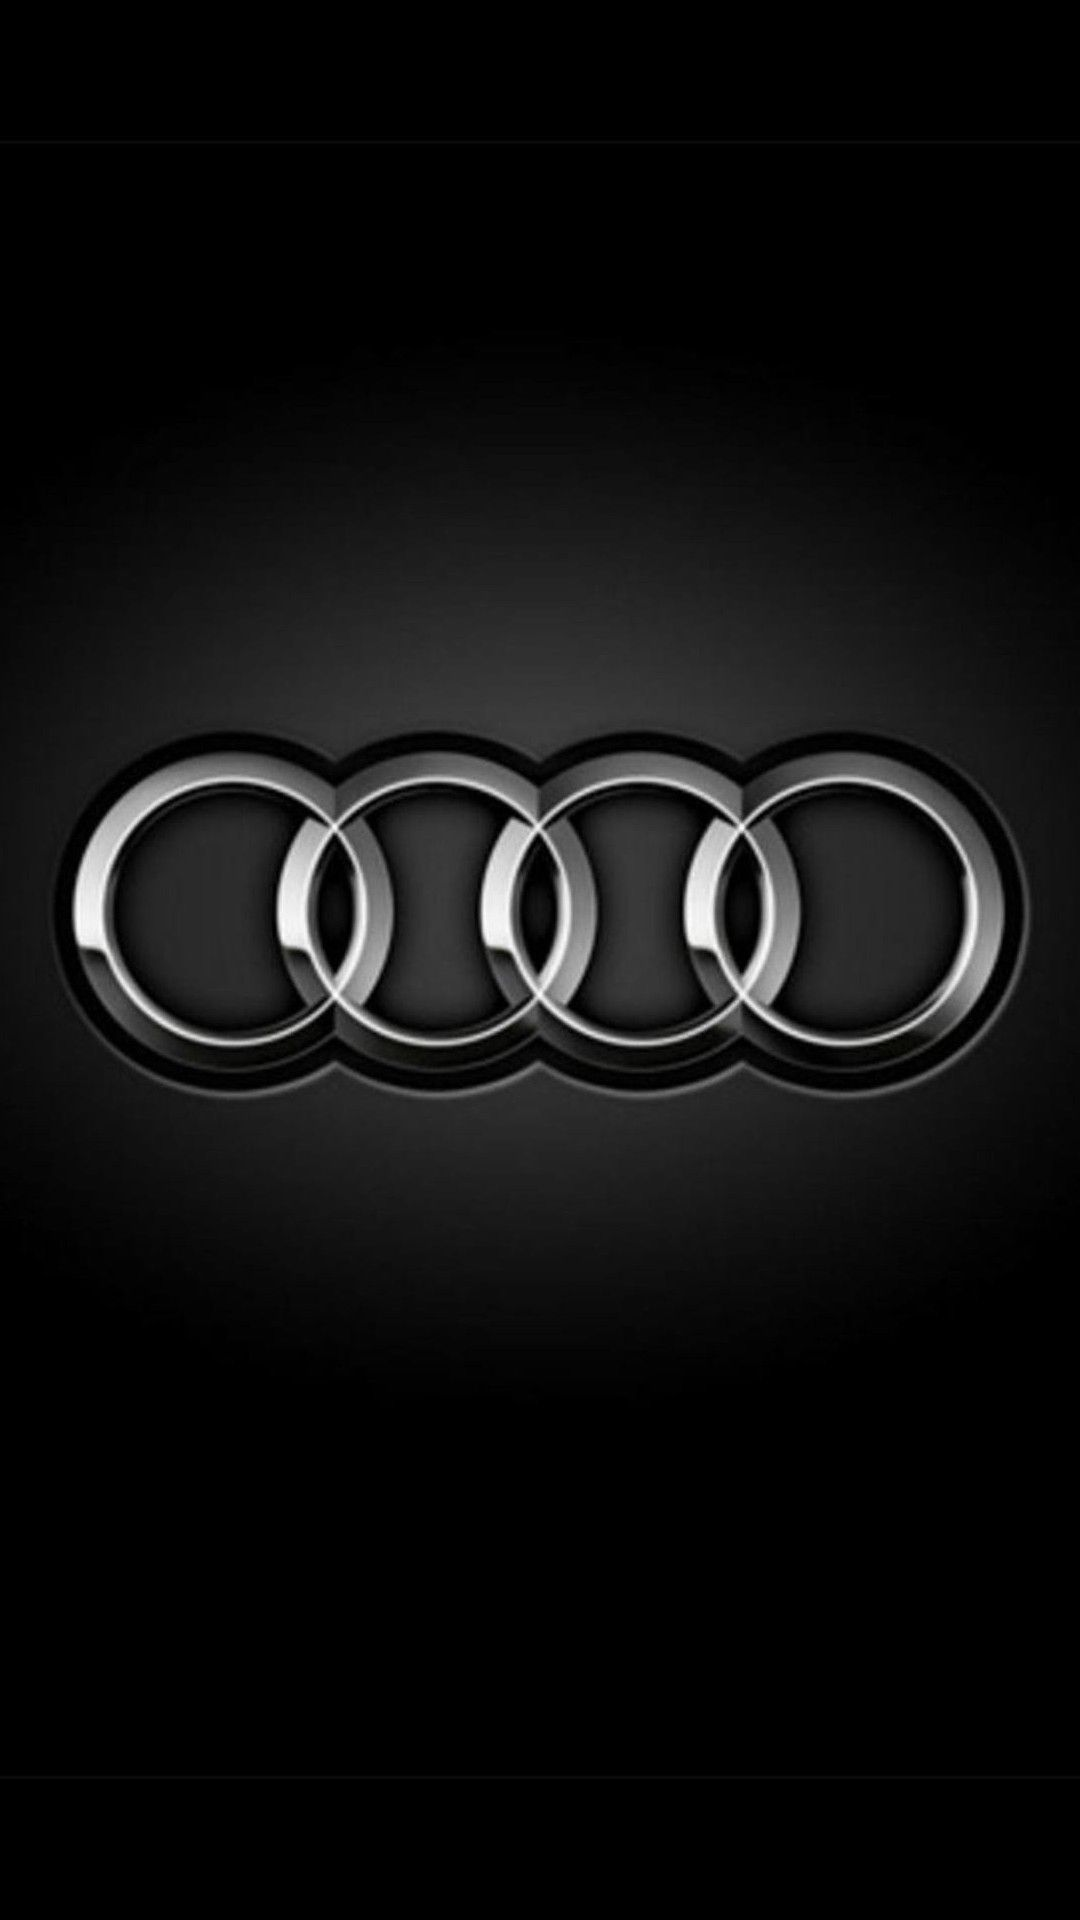 Audi Logo Rings Dark Smartphone Wallpaper And Lockscreen Hd Iphone